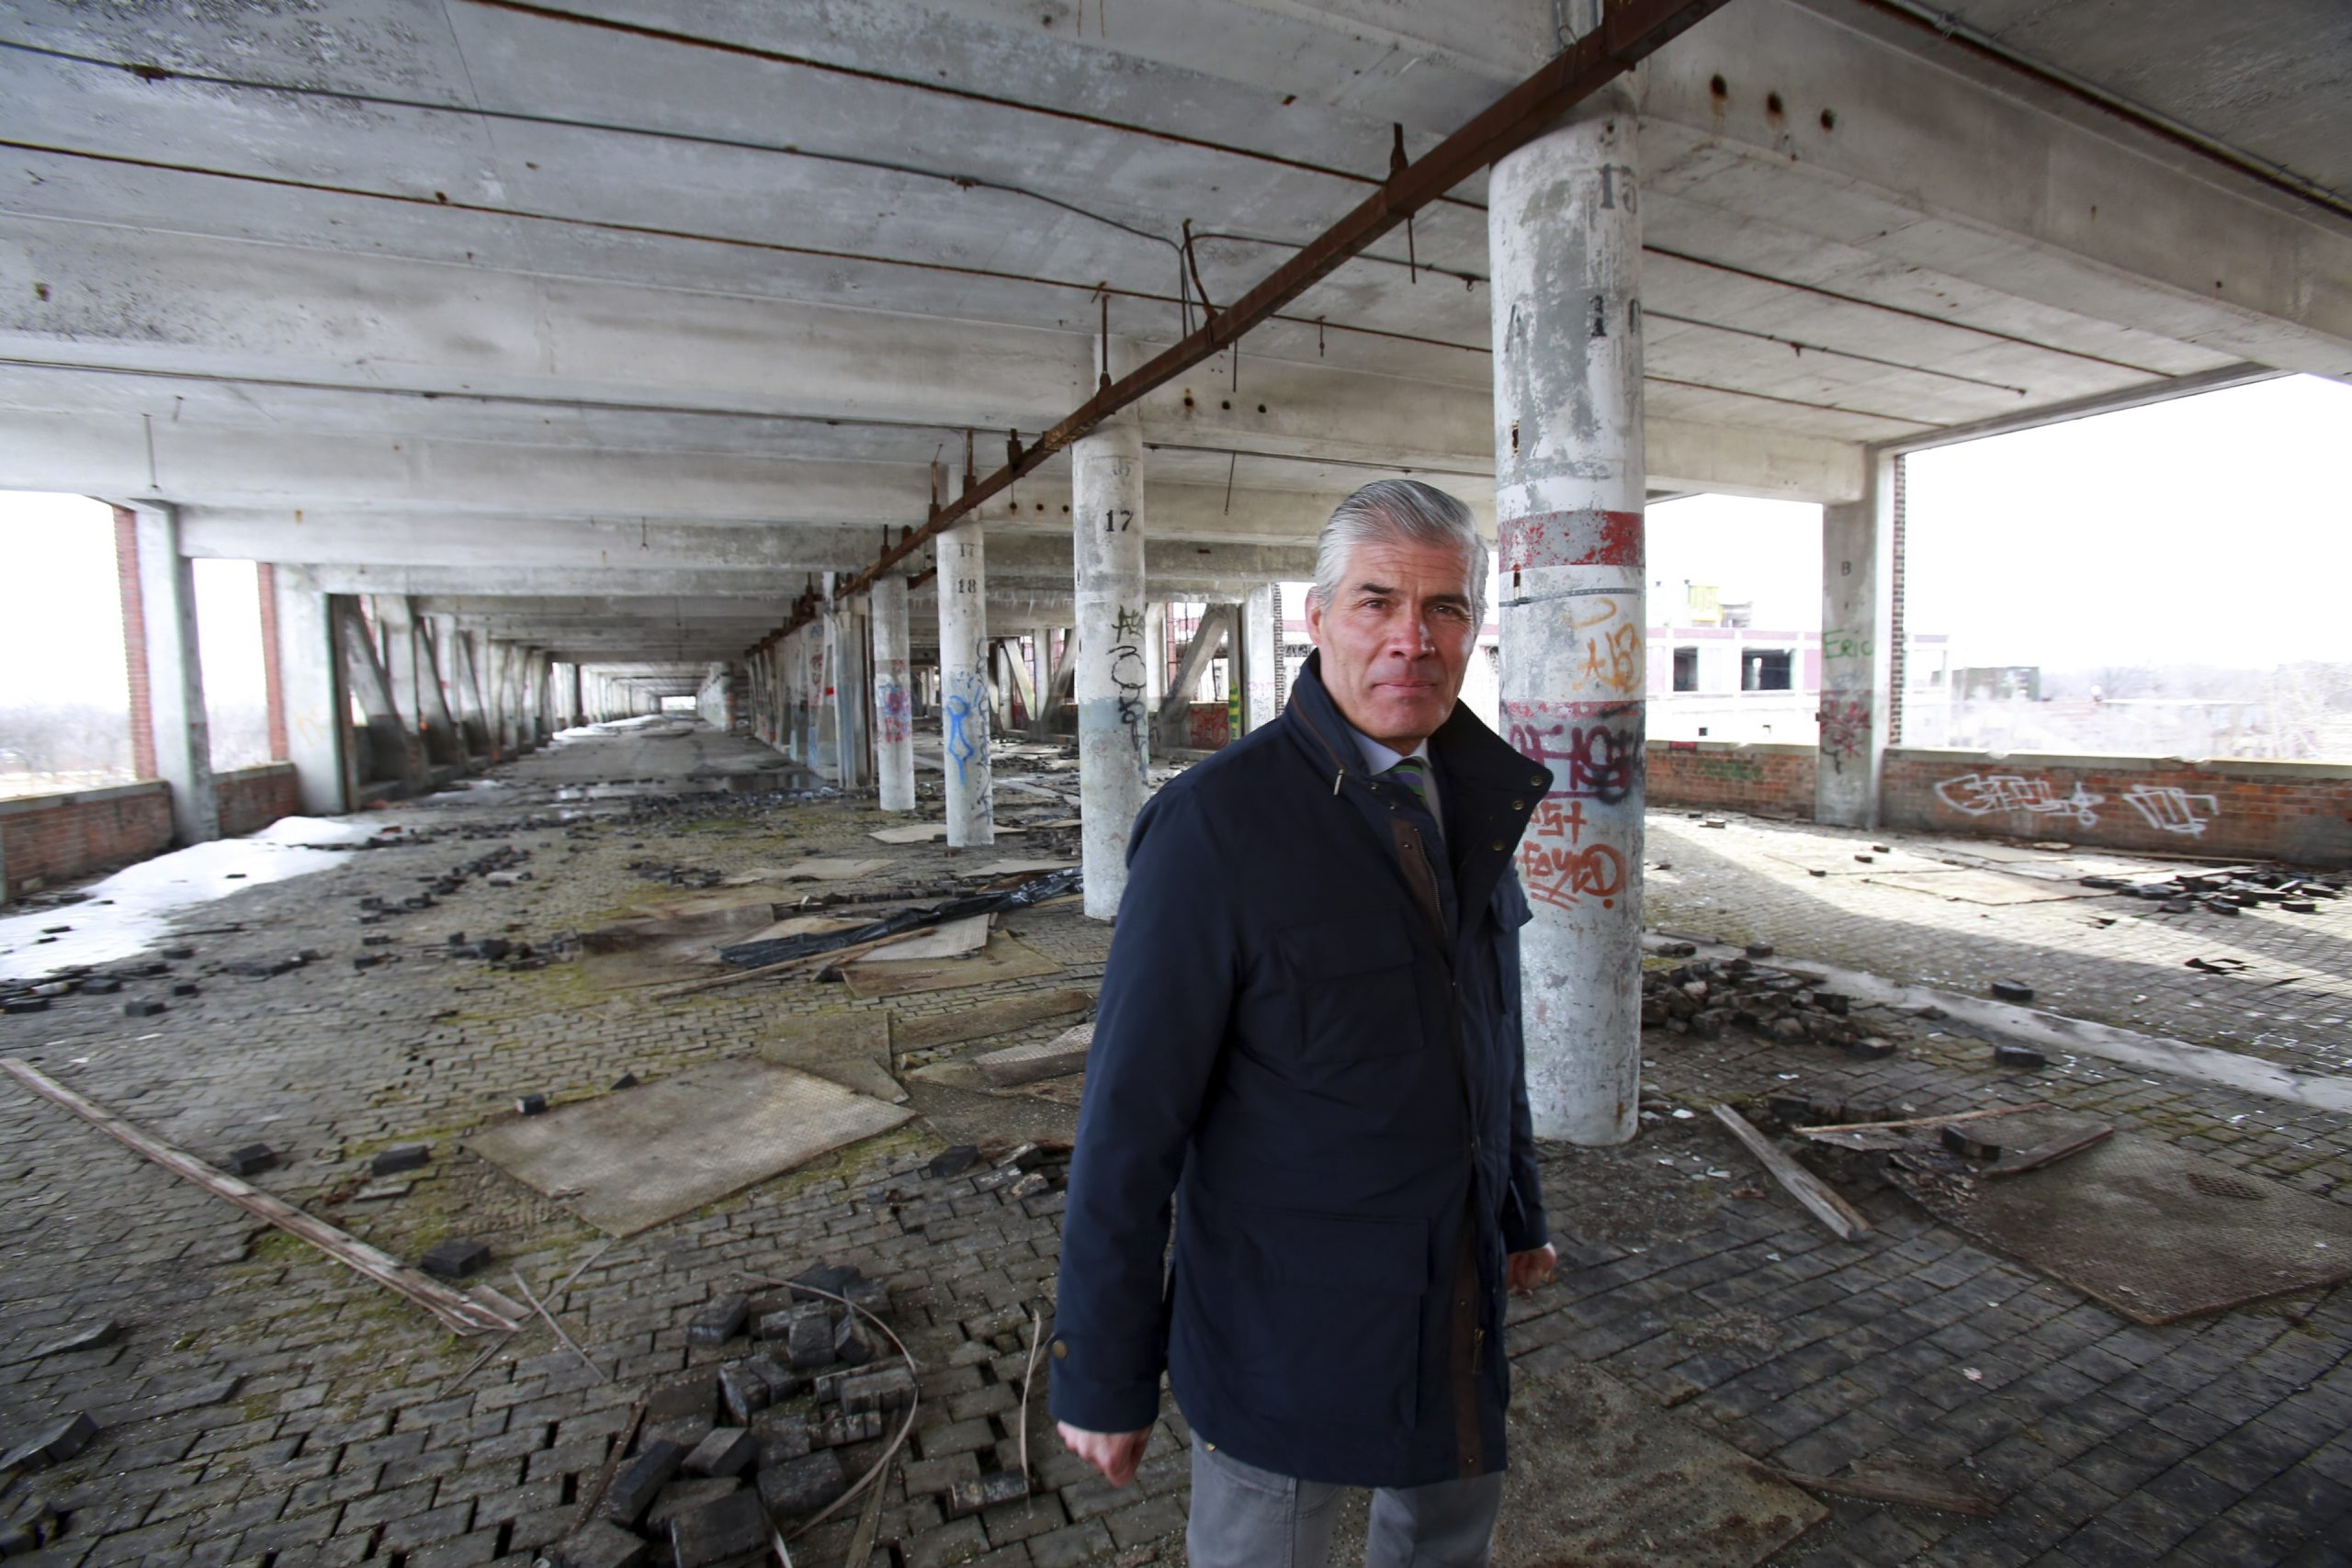 Fernando Palazuelo, a real estate developer based in Lima, Peru, tours the site he paid $405,000 for, the abandoned 40-acre Packard Motor Car plant in Detroit.